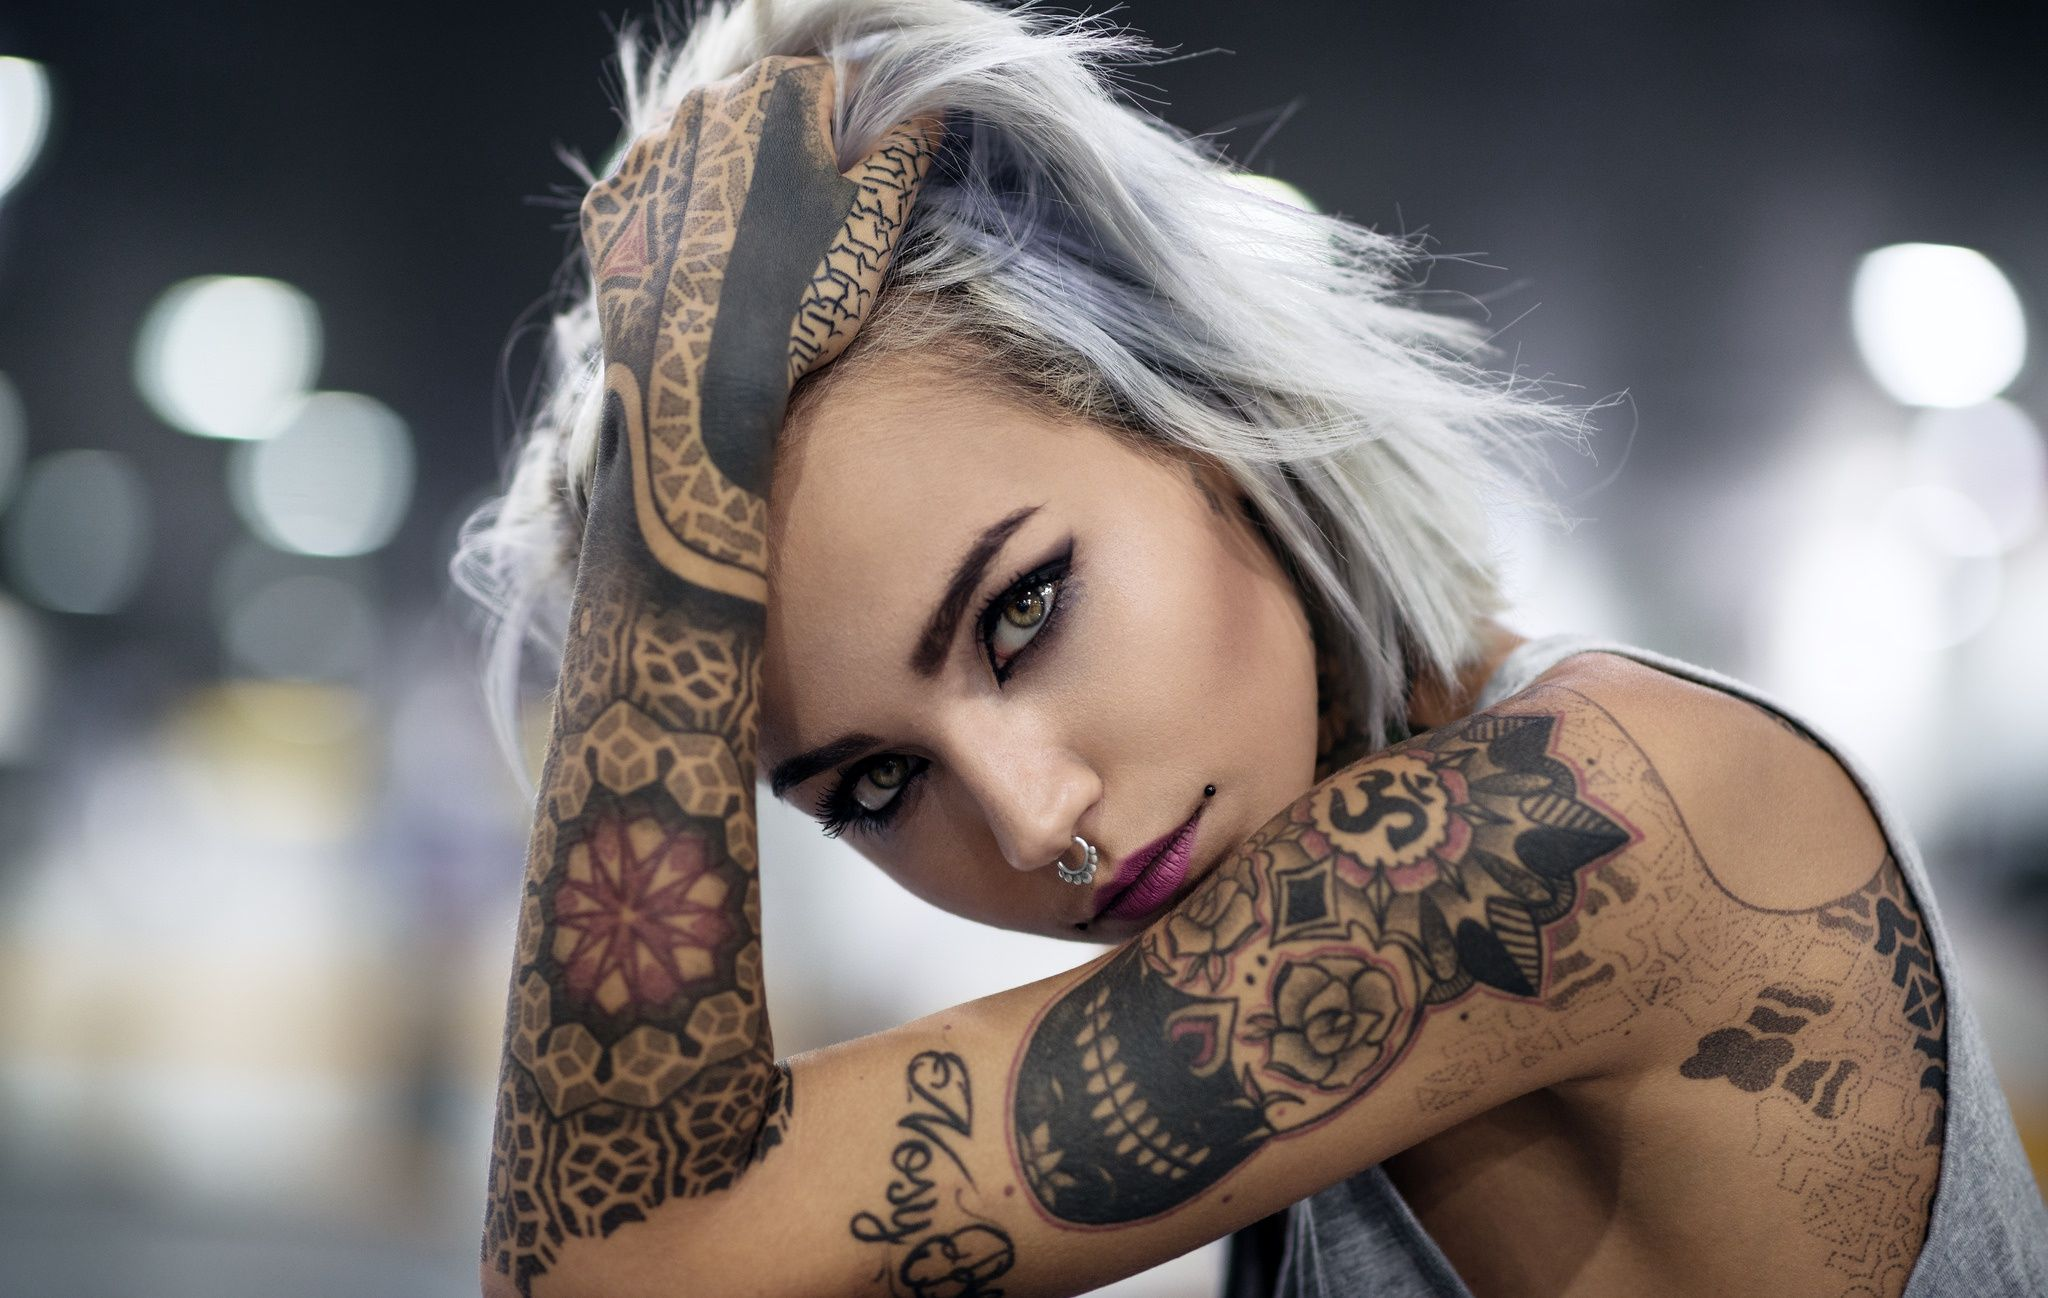 Tattoo websites for girls - Sexy Tattoos Every Girl Would Definitely Want To Get Inked Trend To Wear